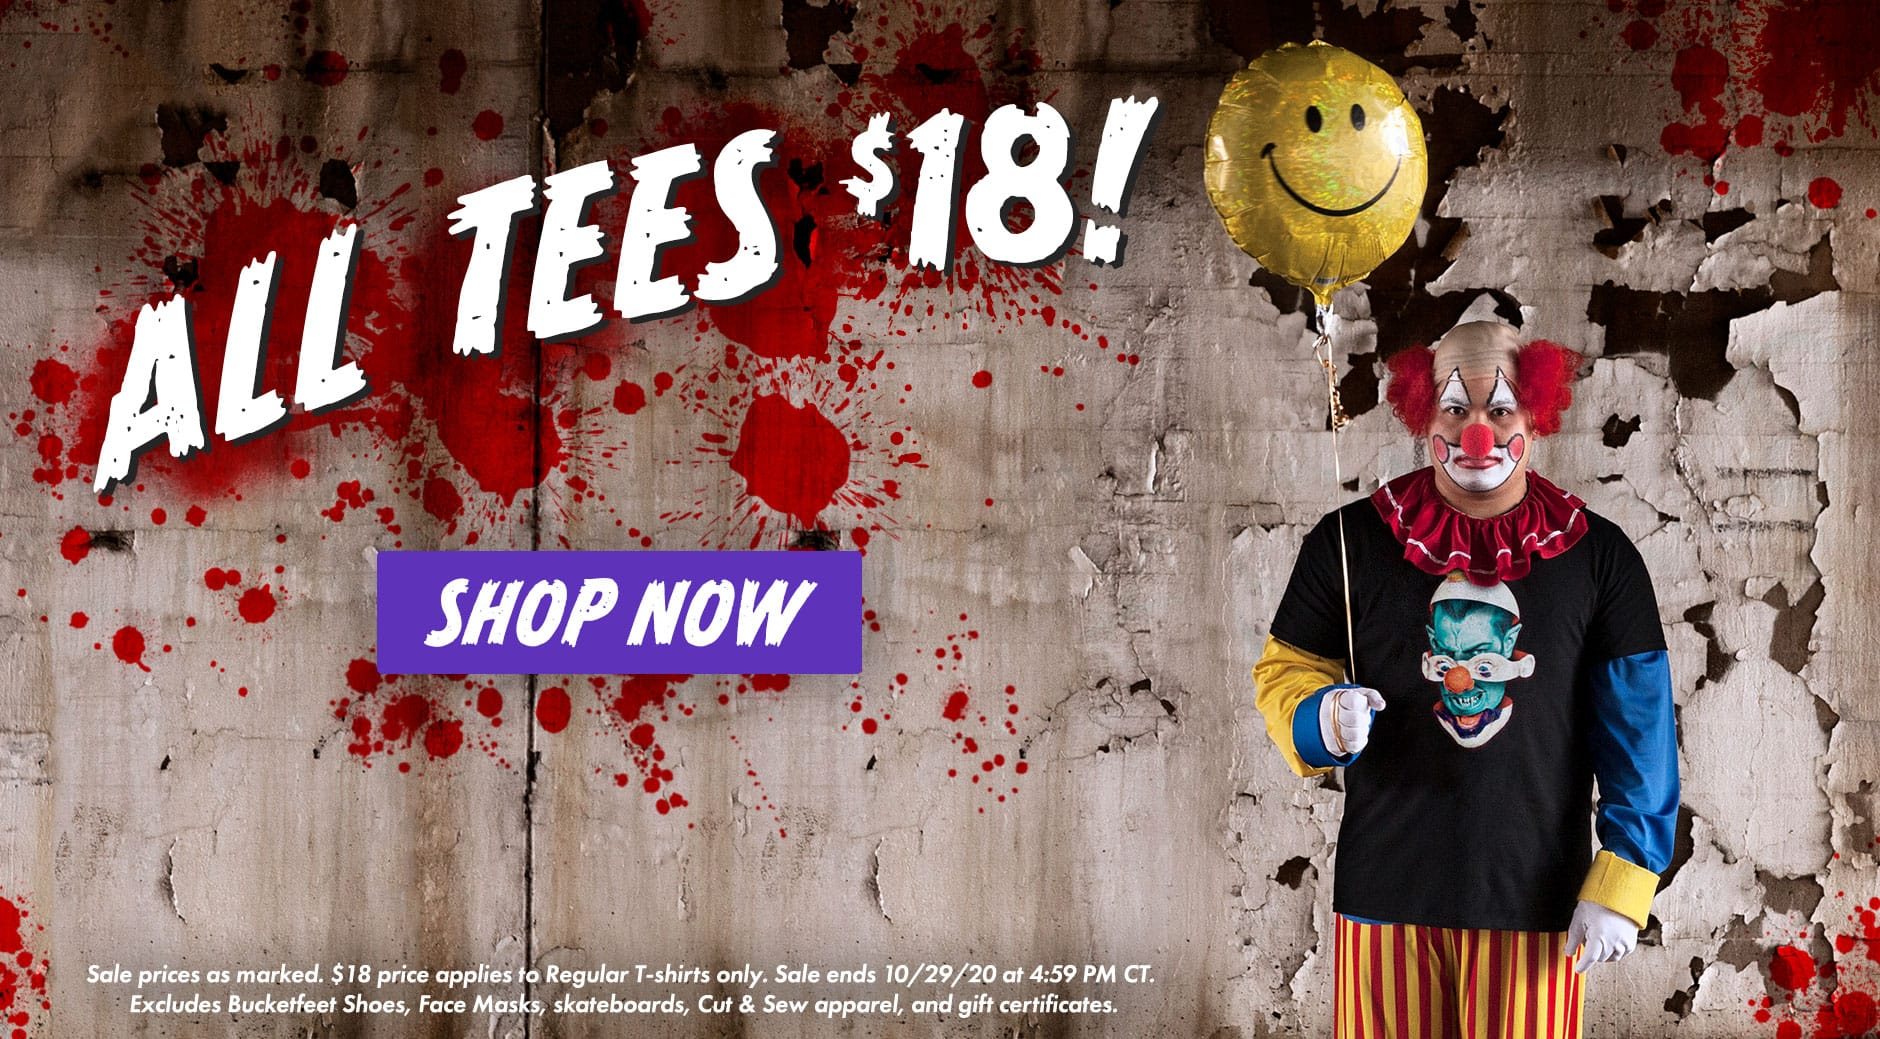 Shop $18 Tees on Threadless